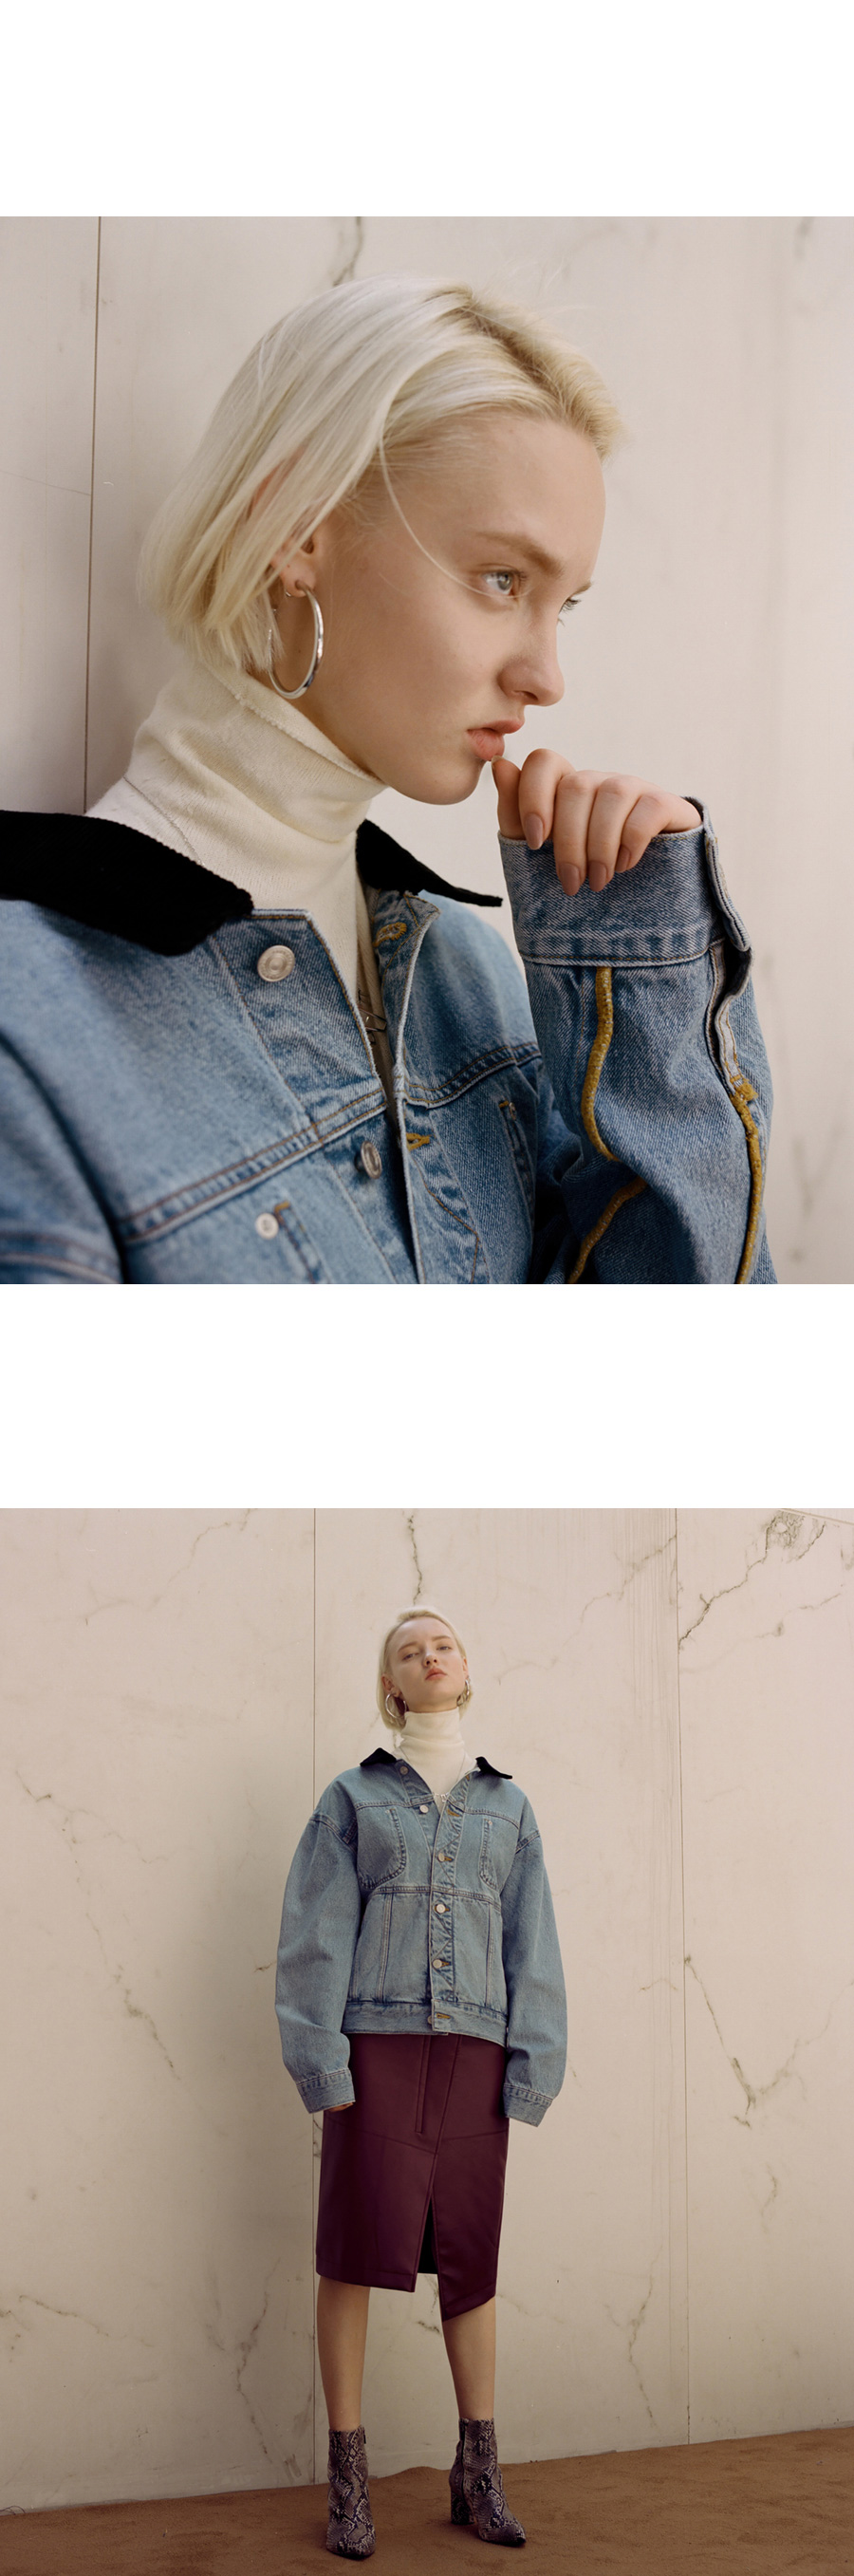 UNISEX INSIDE OUT DENIM JACKET id13.jpg